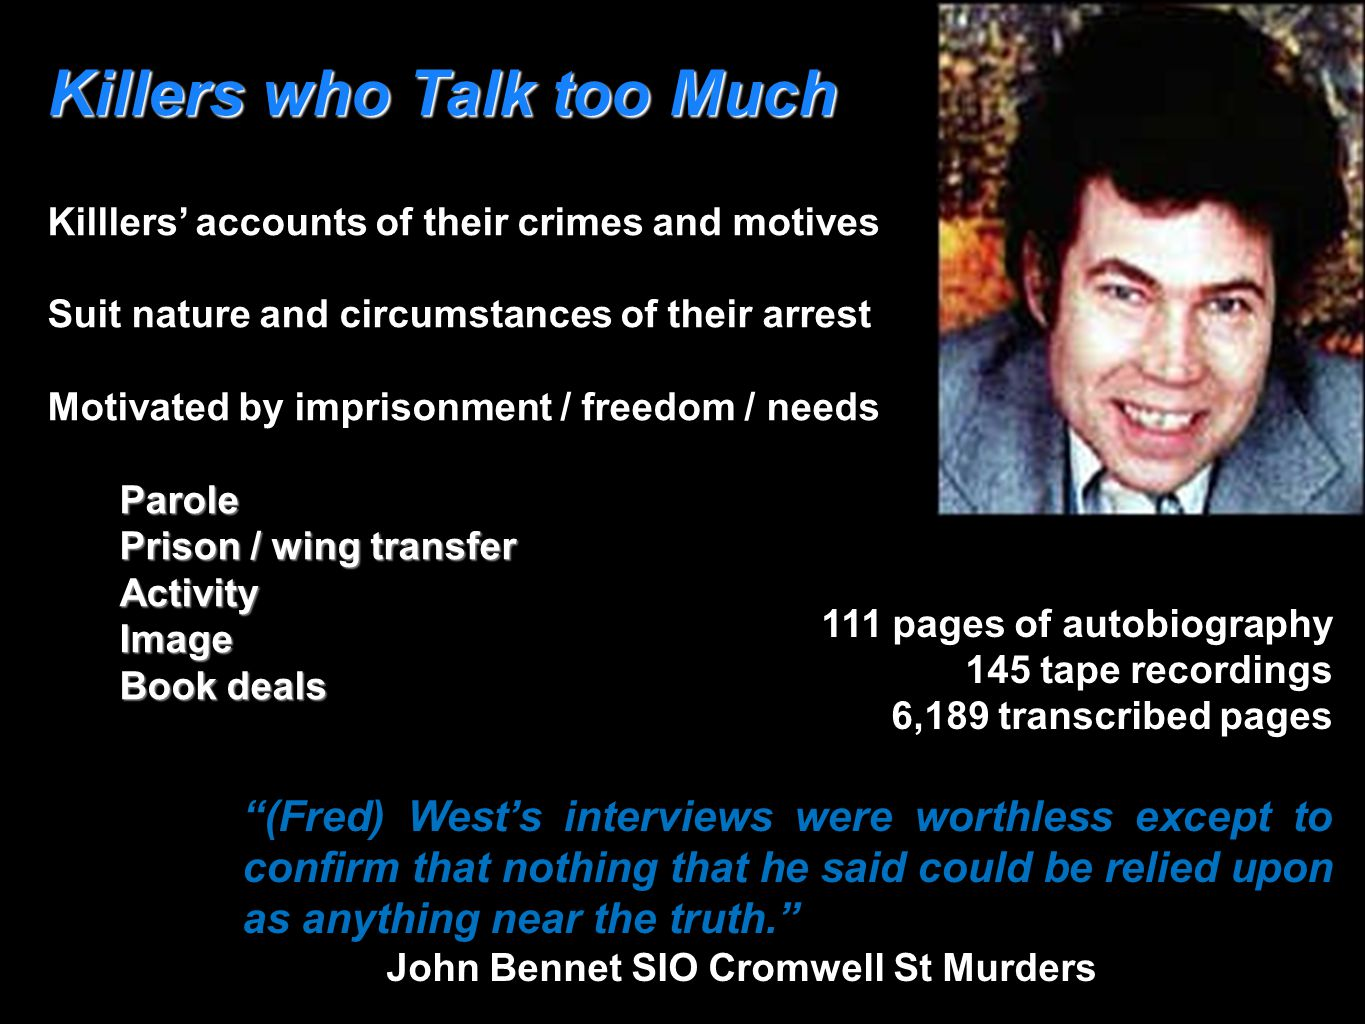 Killers who Talk too Much Killlers' accounts of their crimes and motives Suit nature and circumstances of their arrest Motivated by imprisonment / freedom / needsParole Prison / wing transfer ActivityImage Book deals 111 pages of autobiography 145 tape recordings 6,189 transcribed pages (Fred) West's interviews were worthless except to confirm that nothing that he said could be relied upon as anything near the truth. John Bennet SIO Cromwell St Murders